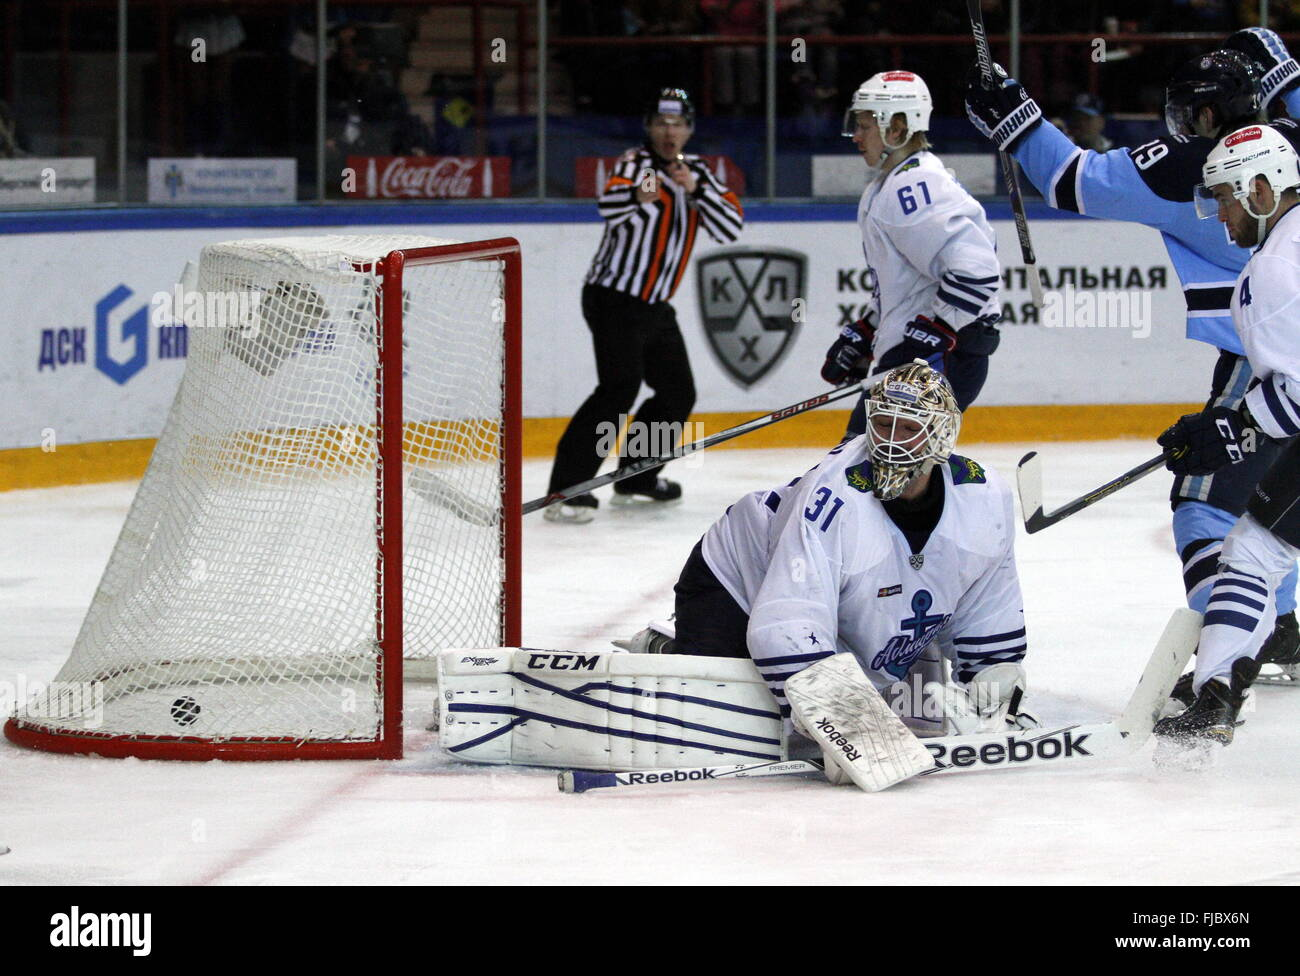 Admirals Cup Stock Photos Amp Admirals Cup Stock Images Alamy